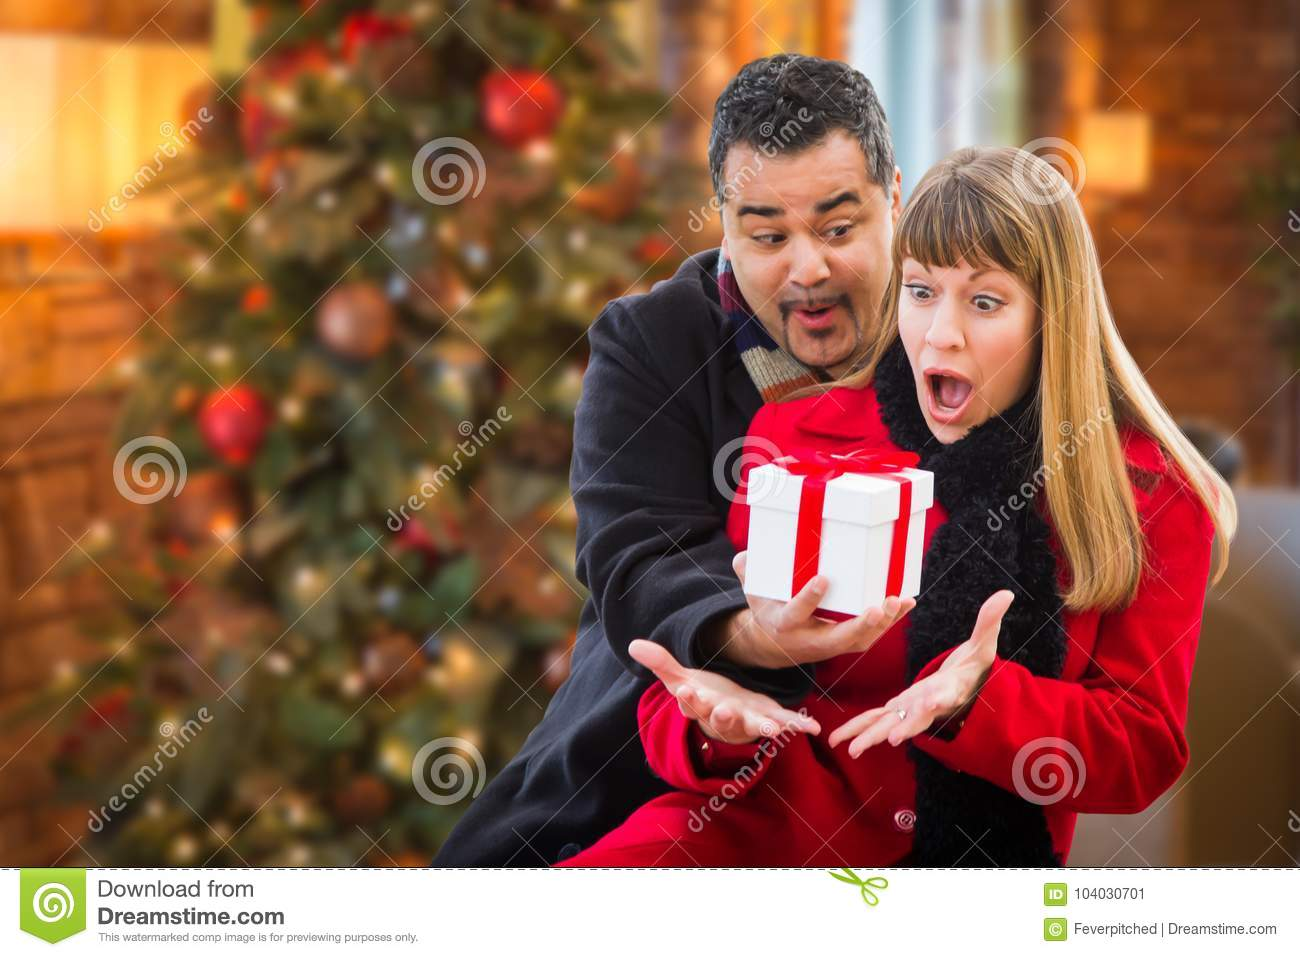 Ecstatic Mixed Race Couple Sharing Christmas In Front of Decorated Tree.